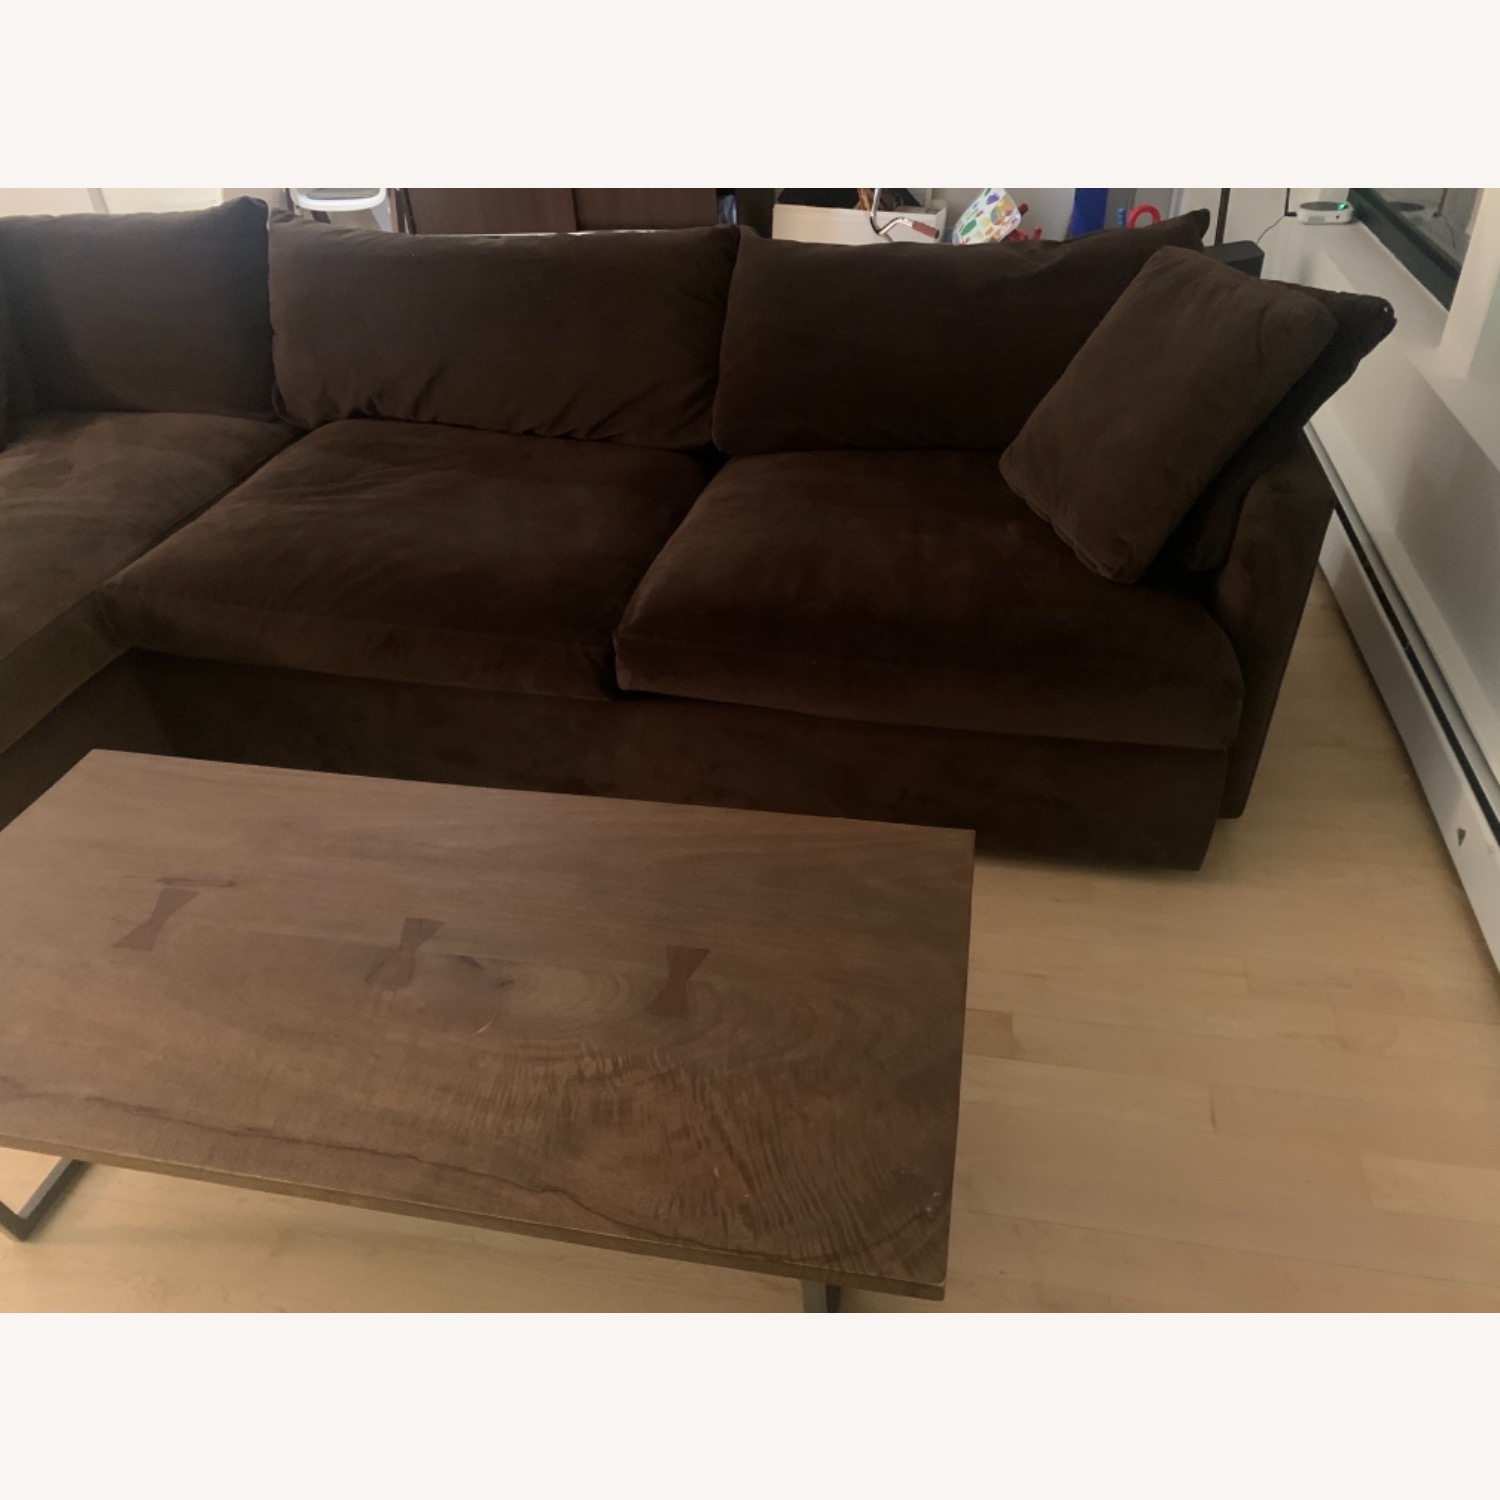 Crate & Barrel Lounge Chaise Brown Color - image-4